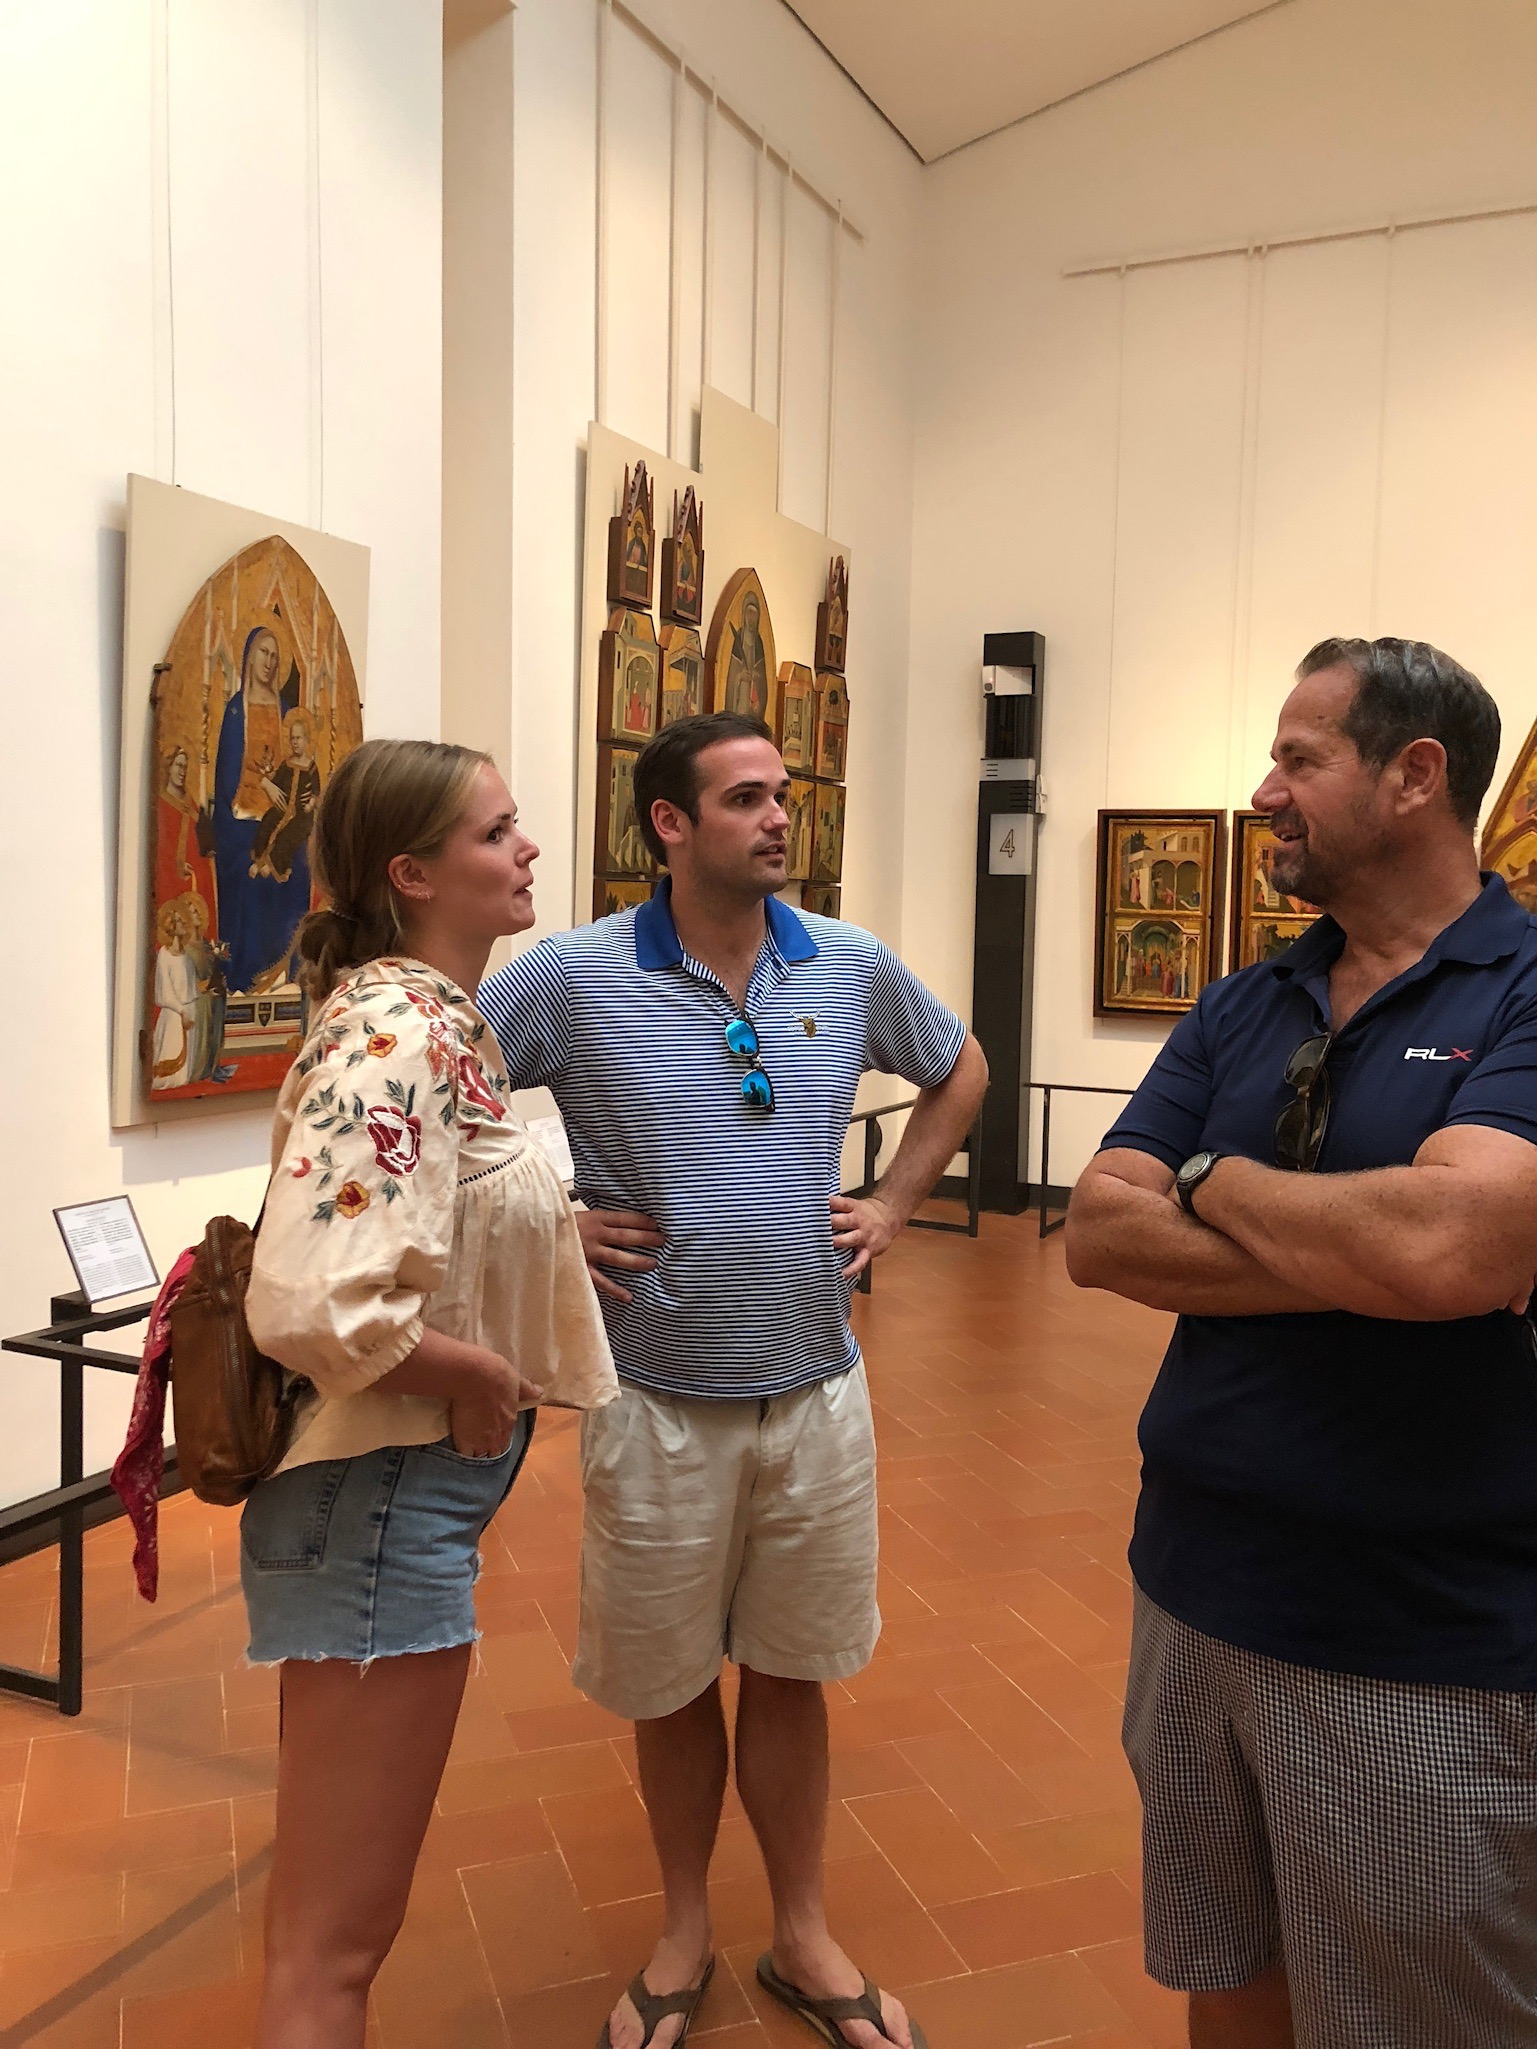 Chloie shared her knowledge of many of the works of art in Florence as she watched her Art History course come alive.